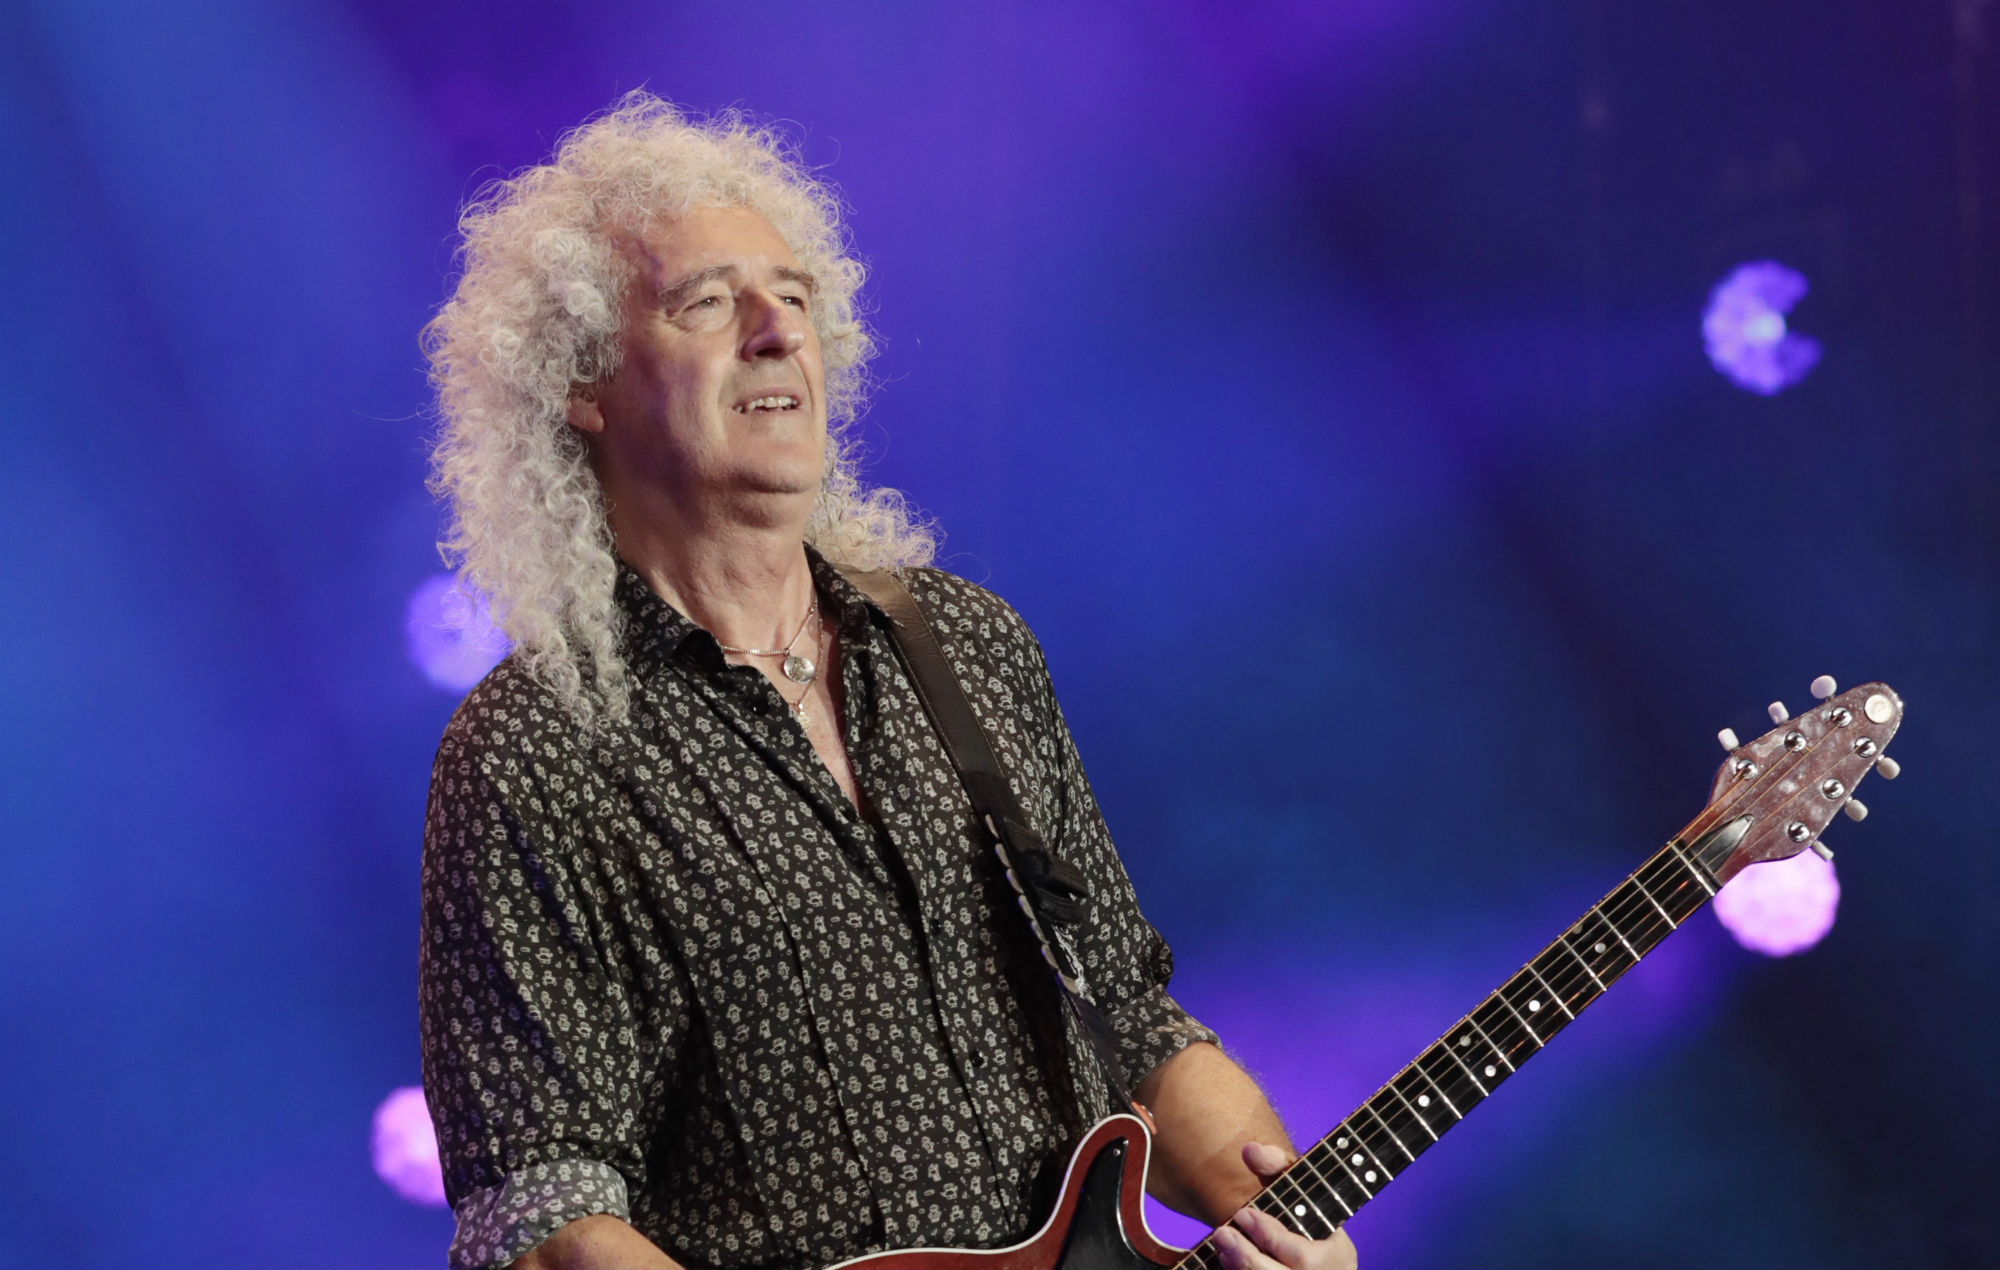 """Brian May thanks fans for """"overwhelming love and support"""" following heart attack scare - EpicNews"""